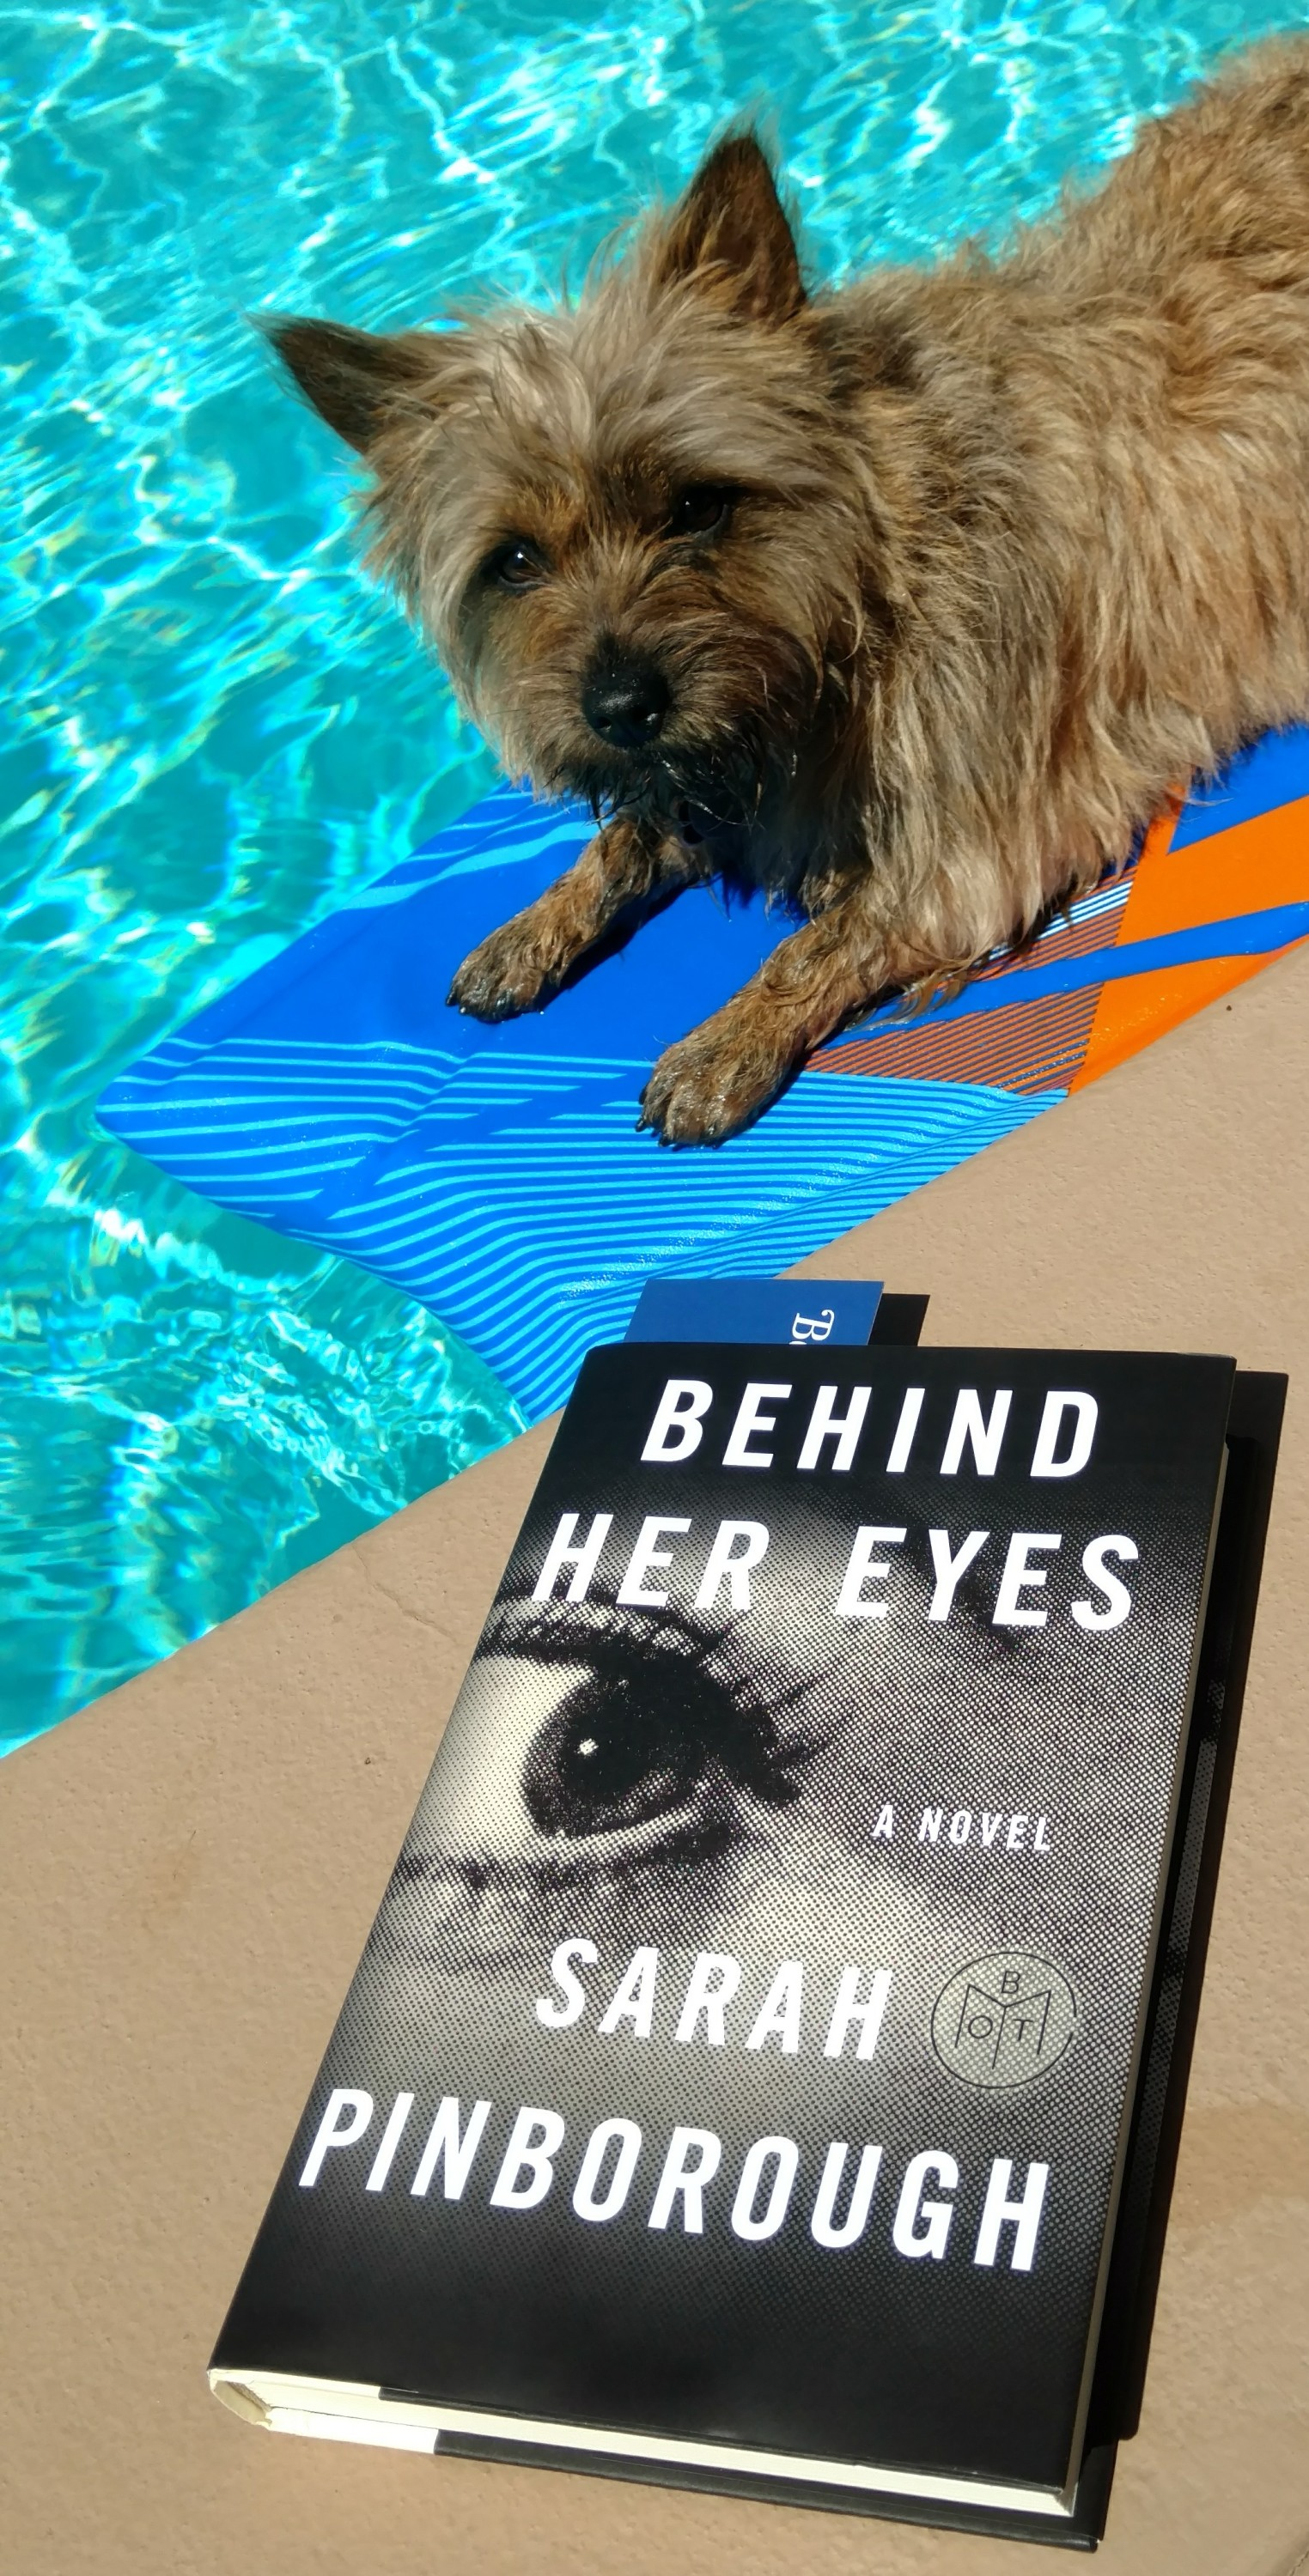 CrazyDogMama s Book Reviews  January   April 2017   CrazyDogMama Behind Her Eyes Book Review